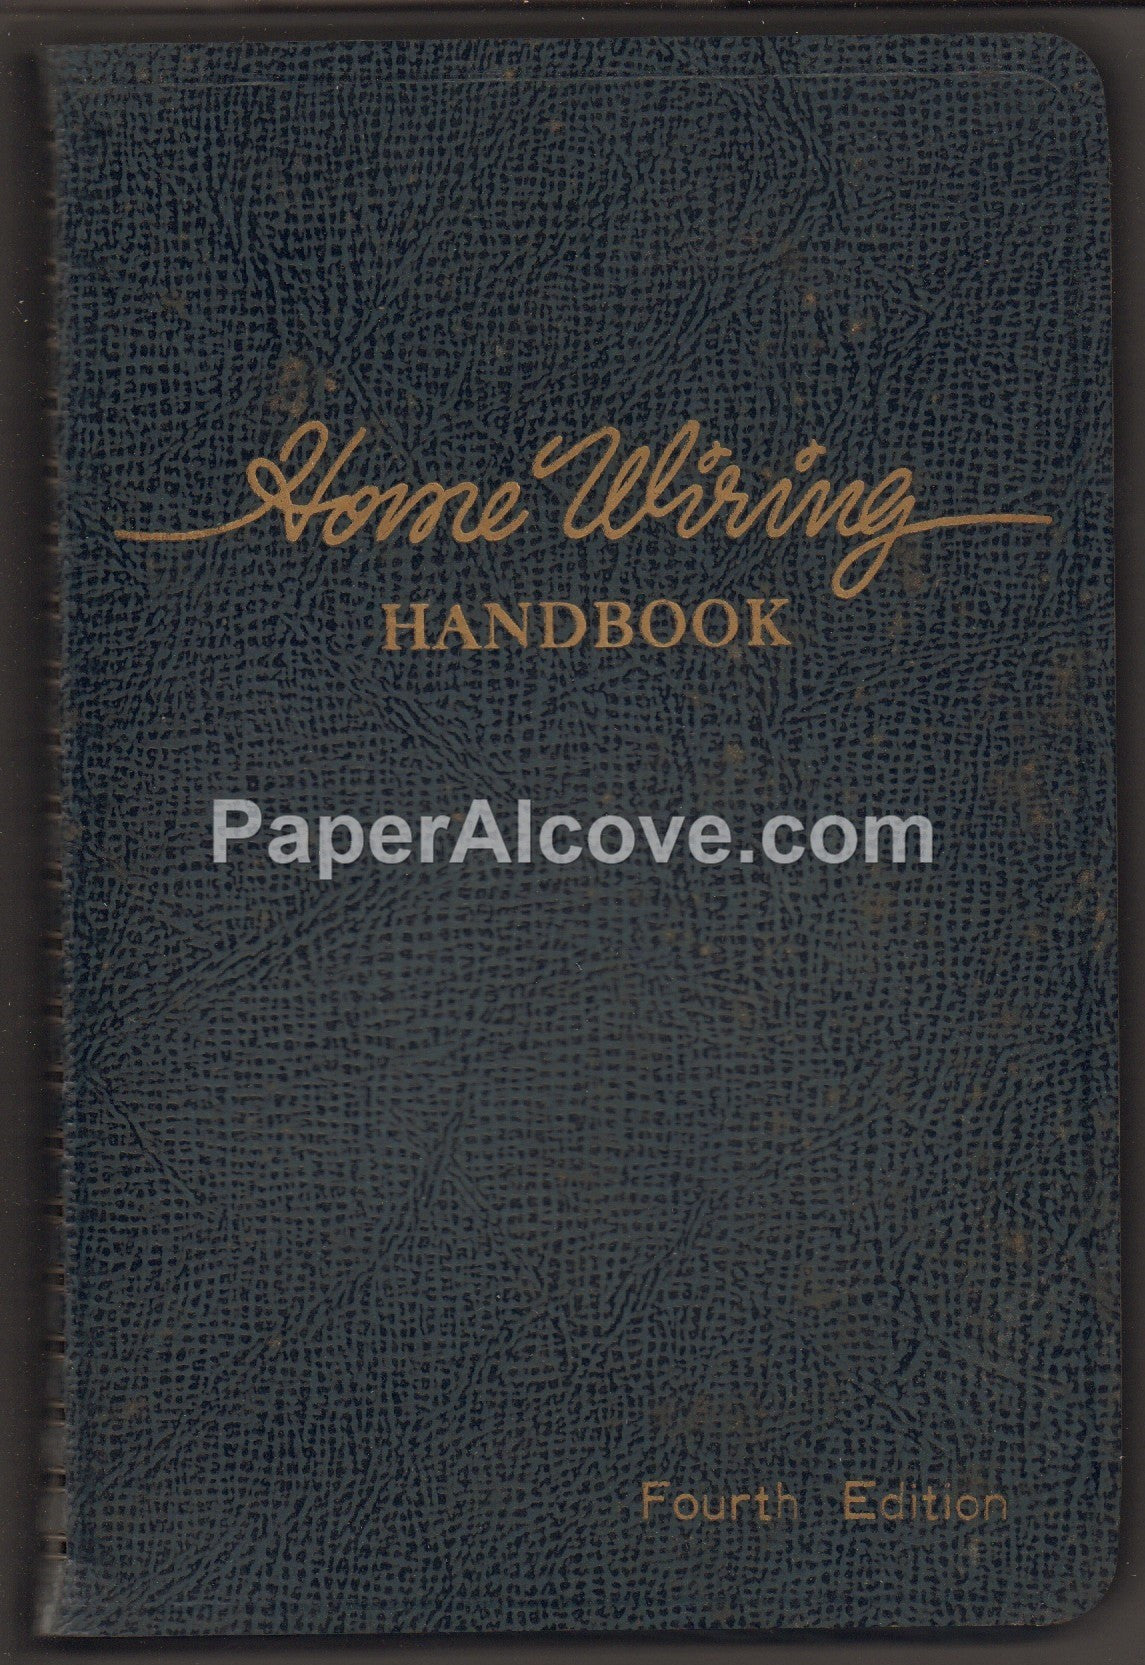 Pleasant Westinghouse Home Wiring Handbook 1955 Vintage Old Book 4Th Edition Pittsburgh Wiring Cloud Hisonuggs Outletorg